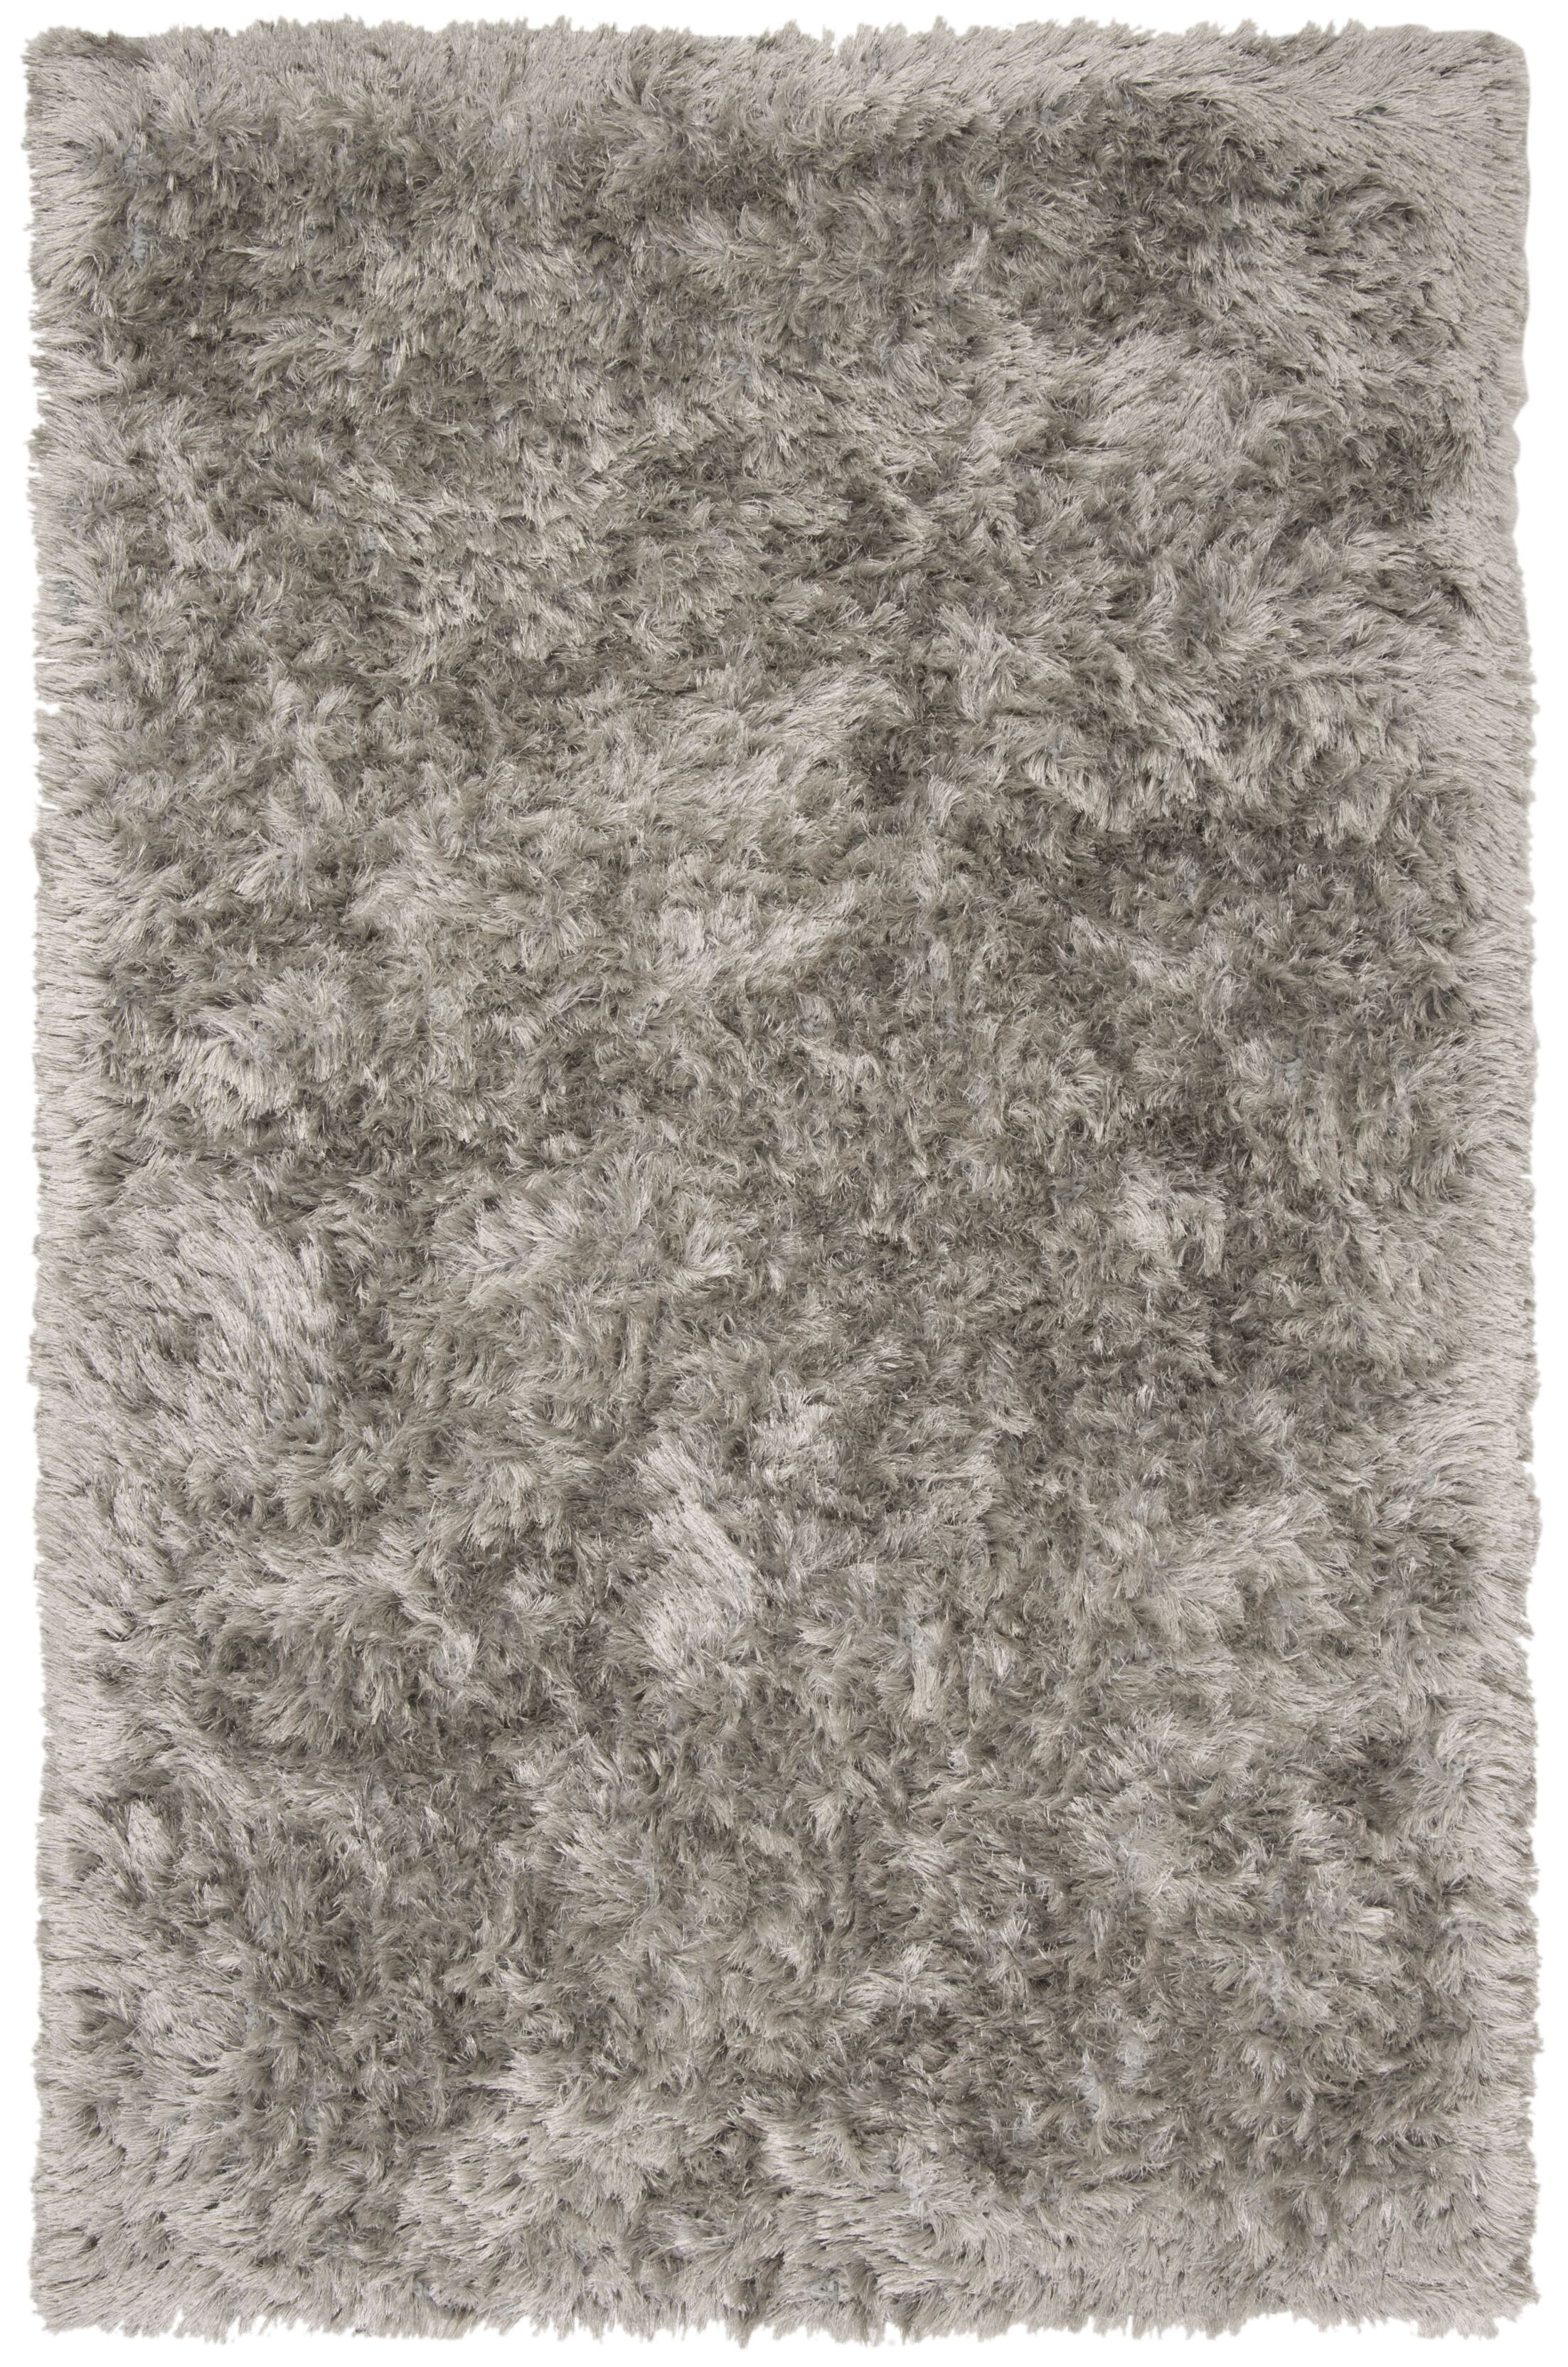 Moultrie Hand-Tufted Silver Area Rug Rug Size: Rectangle 5' X 8'